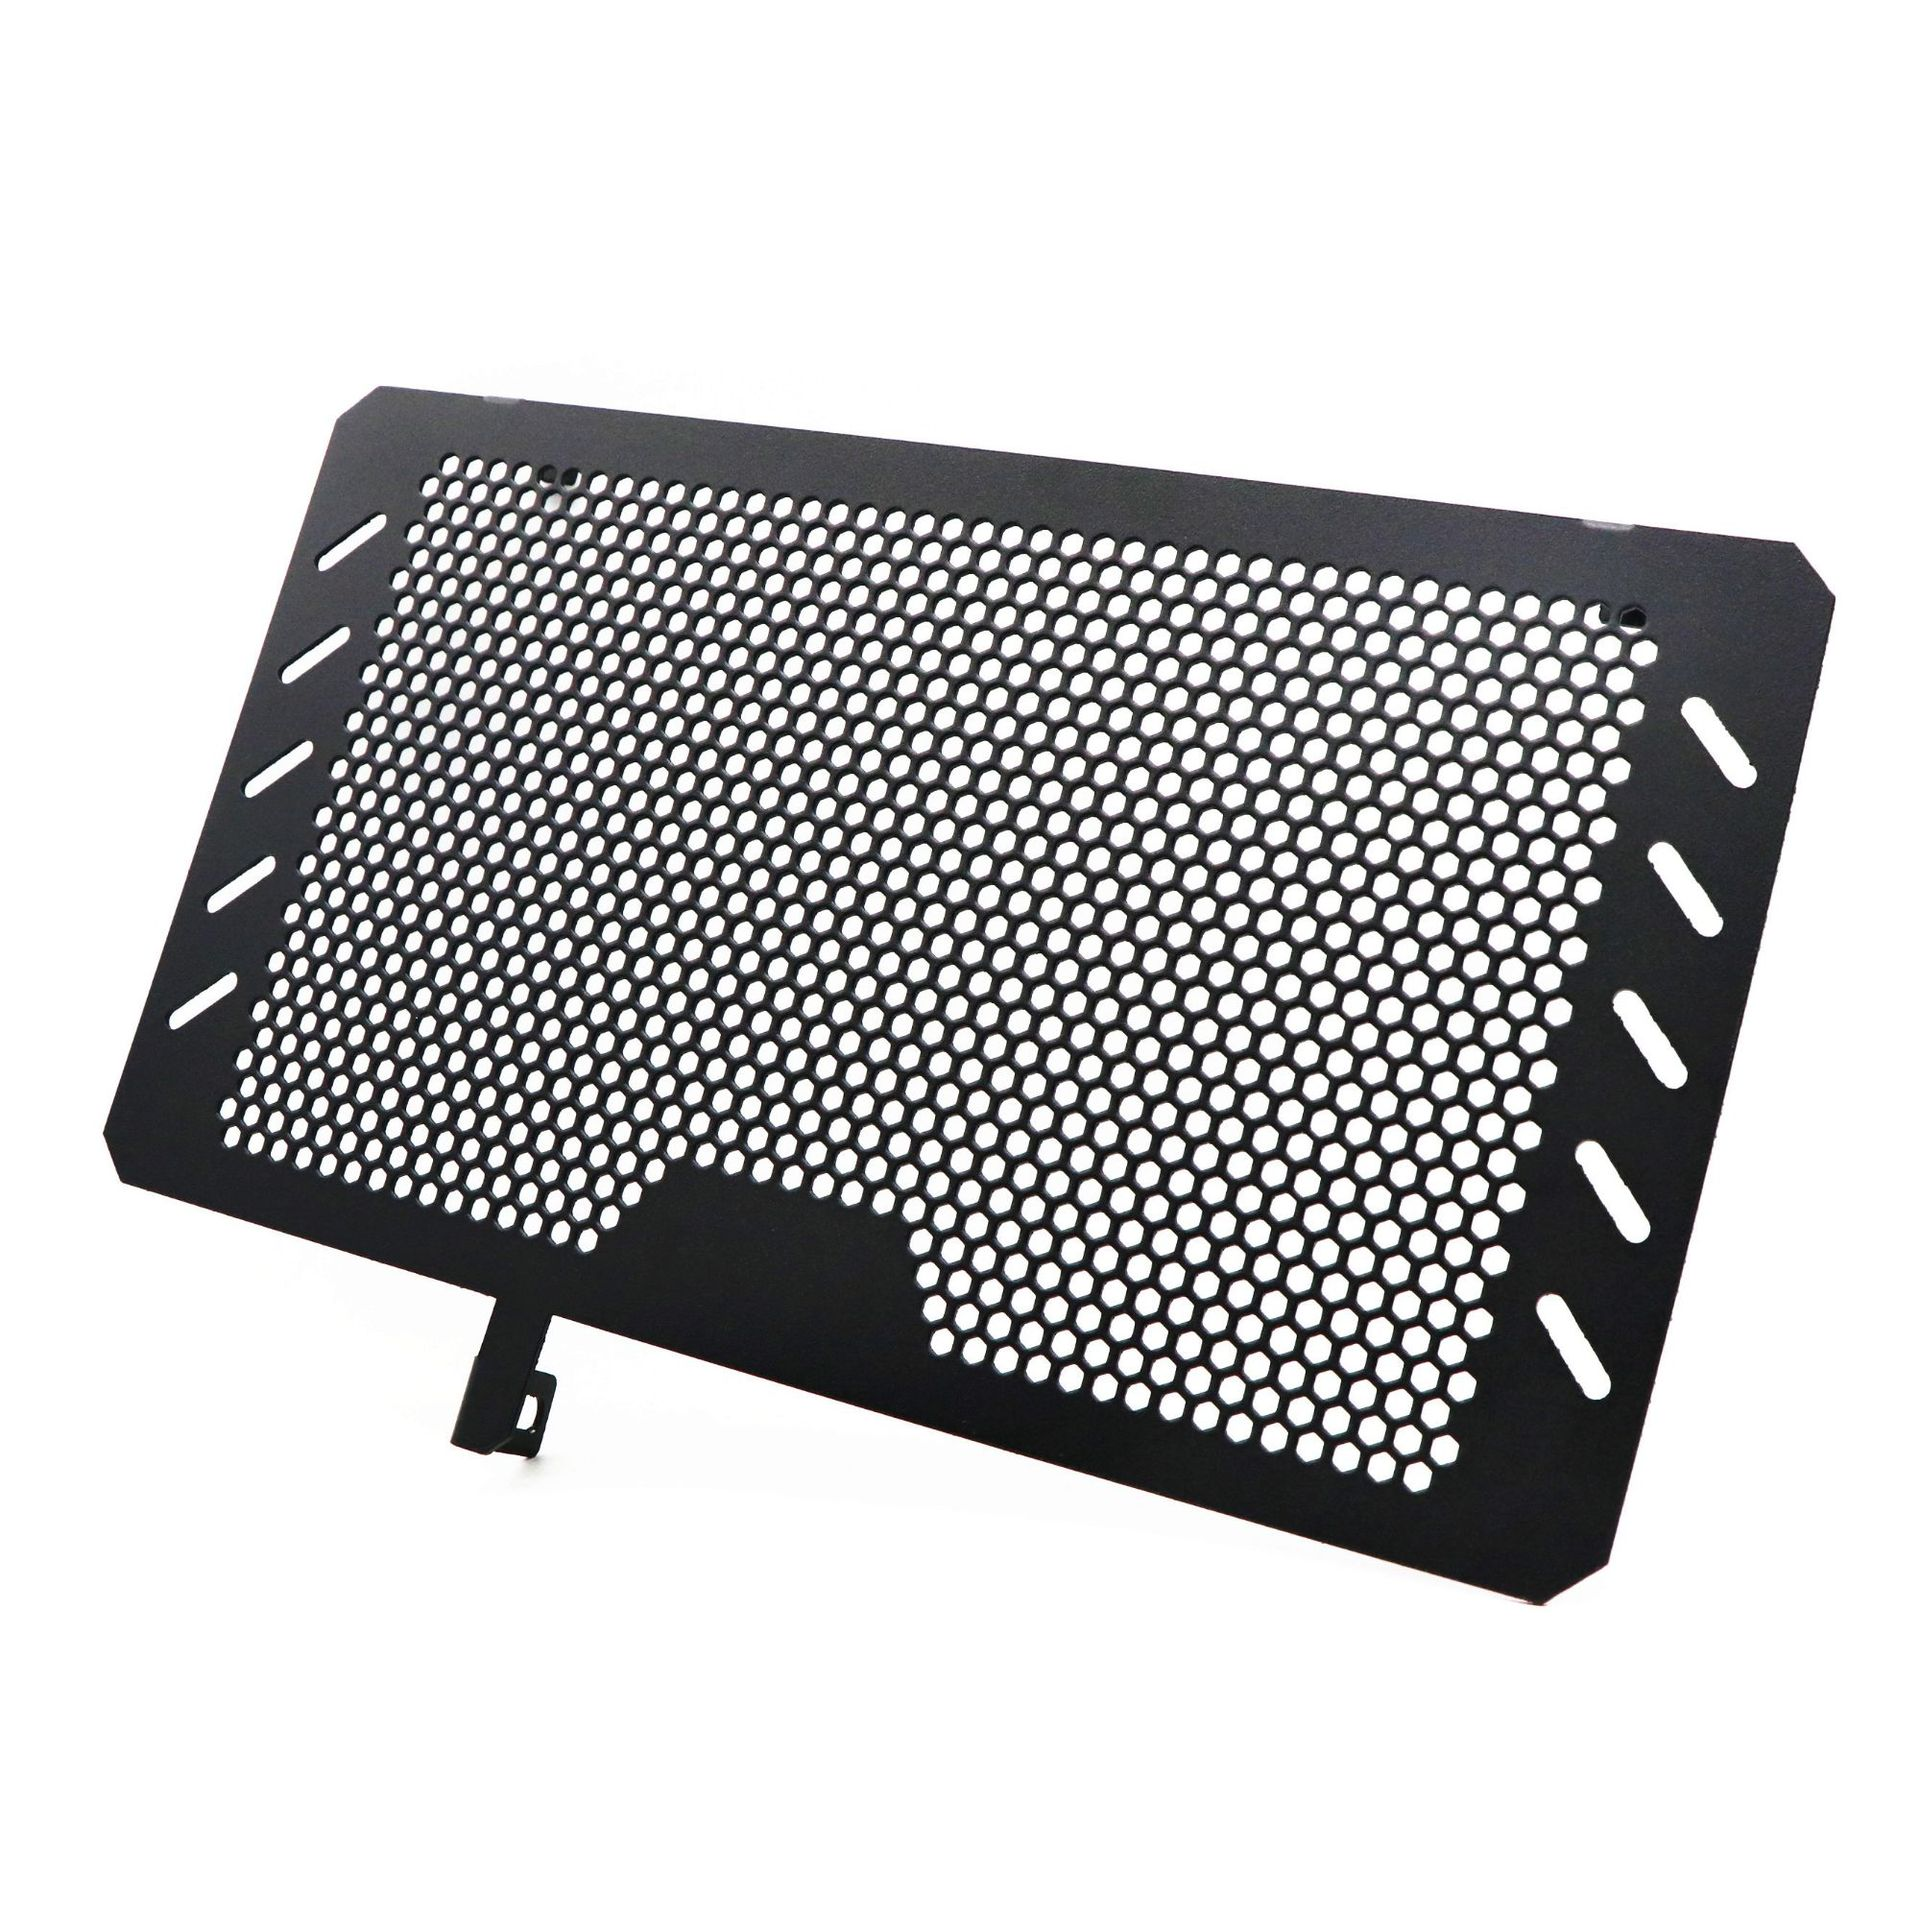 Radiator Grille Guard Water Cooler Protector For SUZUKI DL650 V-STROM 13-18 black